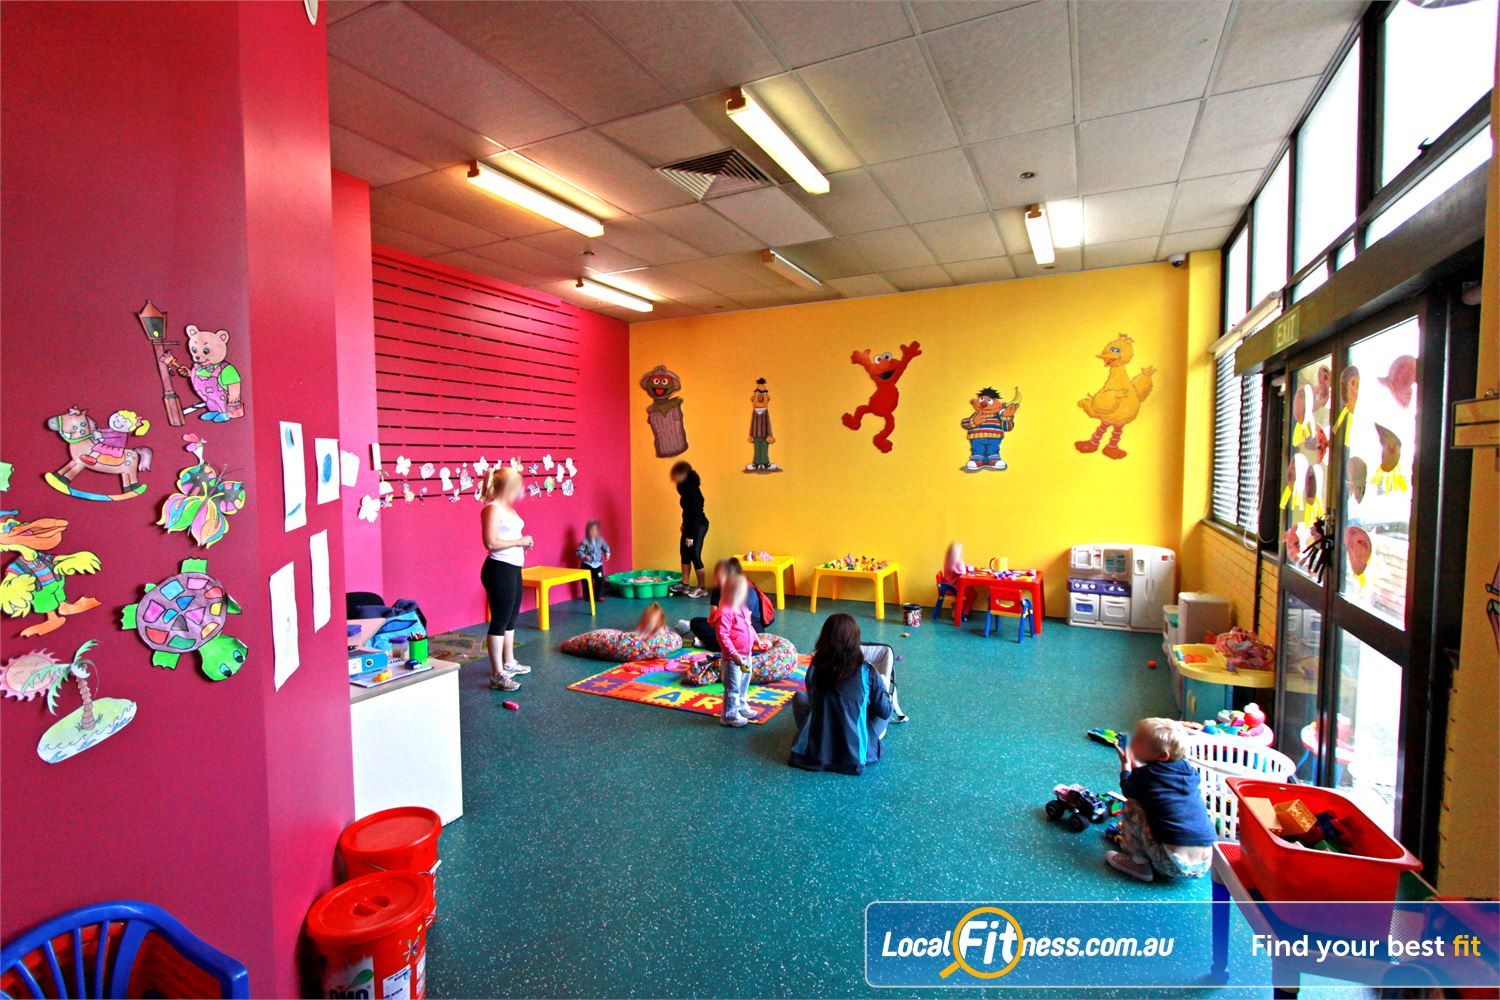 Fernwood Fitness Near Moorebank Fernwood Liverpool provides on-site child minding services.